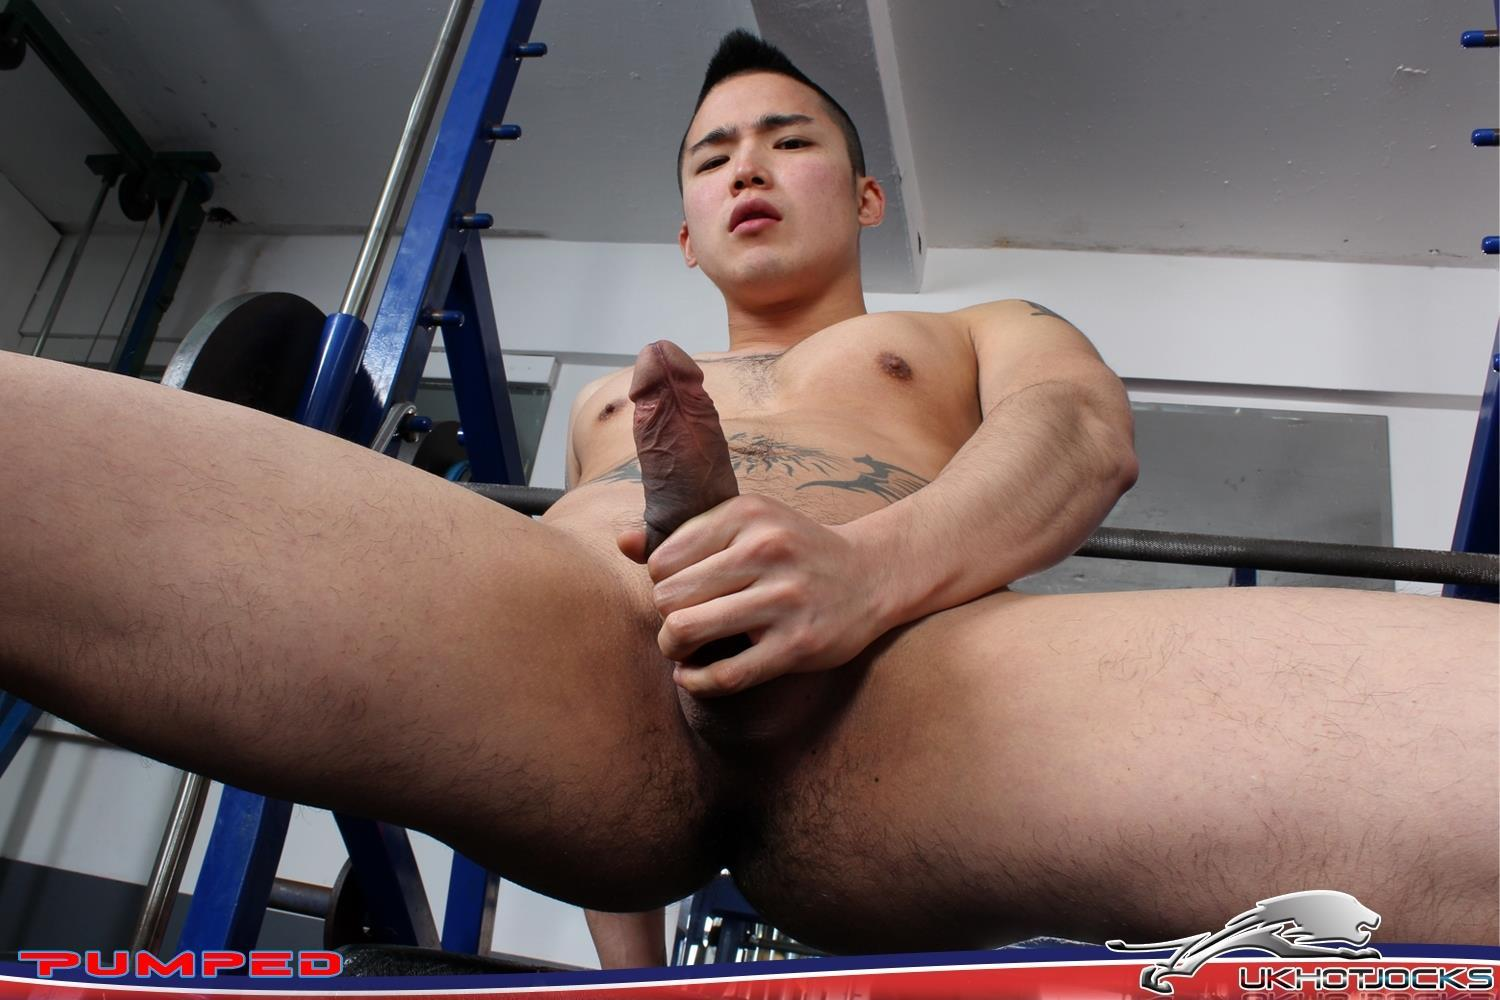 UK Hot Jocks Kayden Gray and Yoshi Kawasaki Big Asian Cock Getting Fucked In The Ass Amateur Gay Porn 06 Asian With A Big Uncut Cock Getting Fucked By Kayden Gray